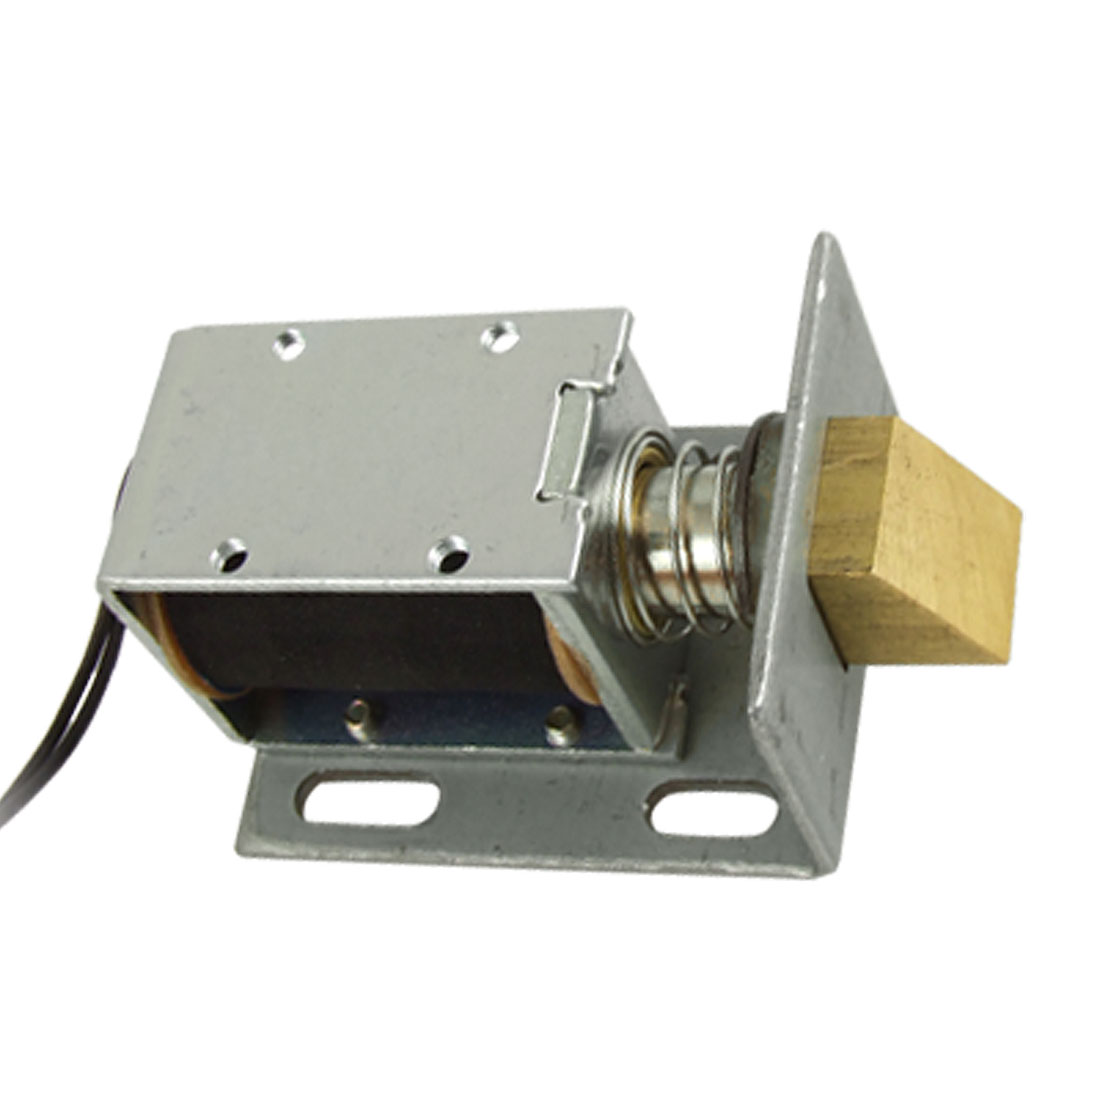 DC 12V 1.3A Open Frame Type Solenoid for Electric Door Lock